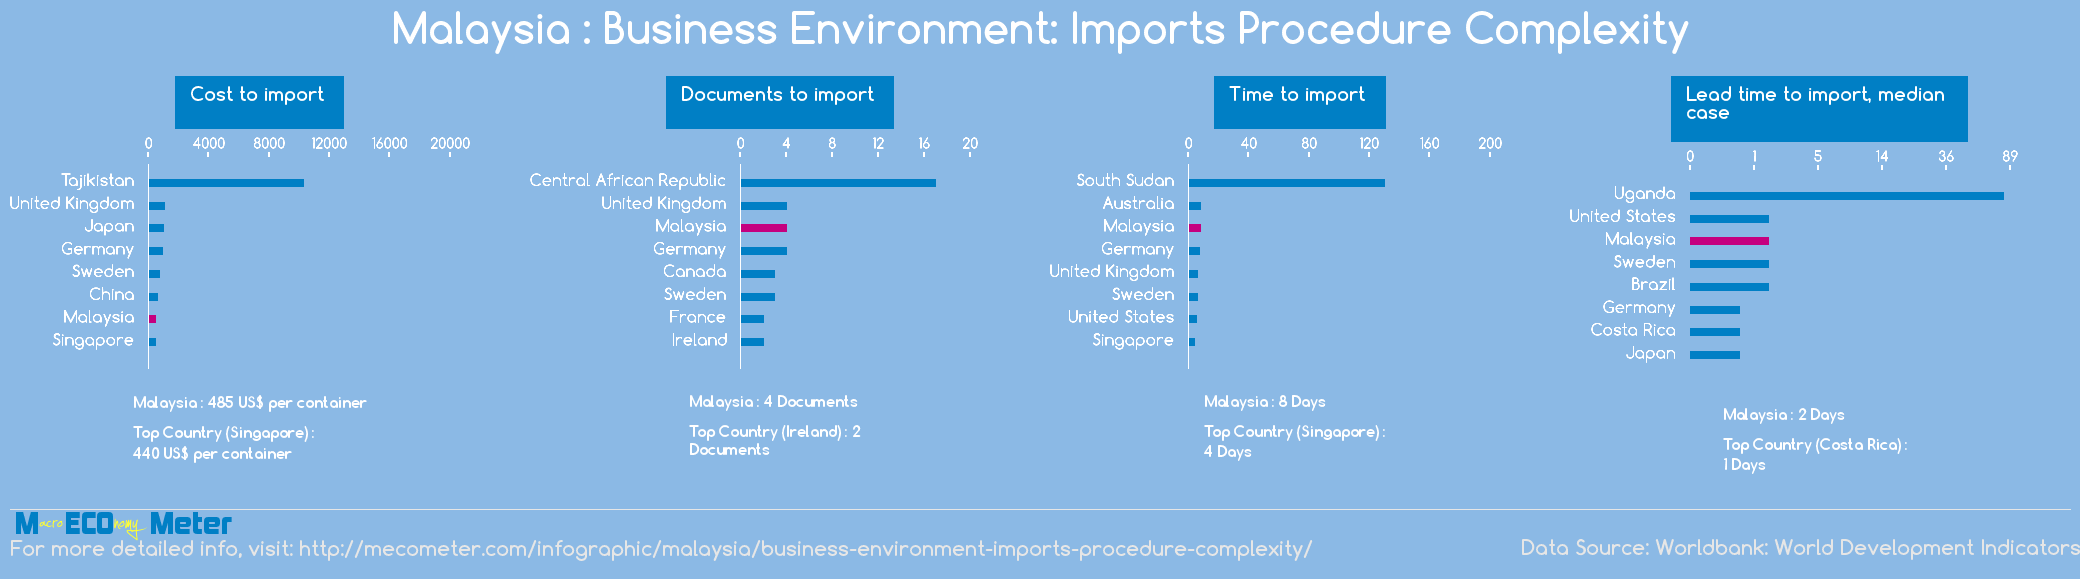 Malaysia : Business Environment: Imports Procedure Complexity